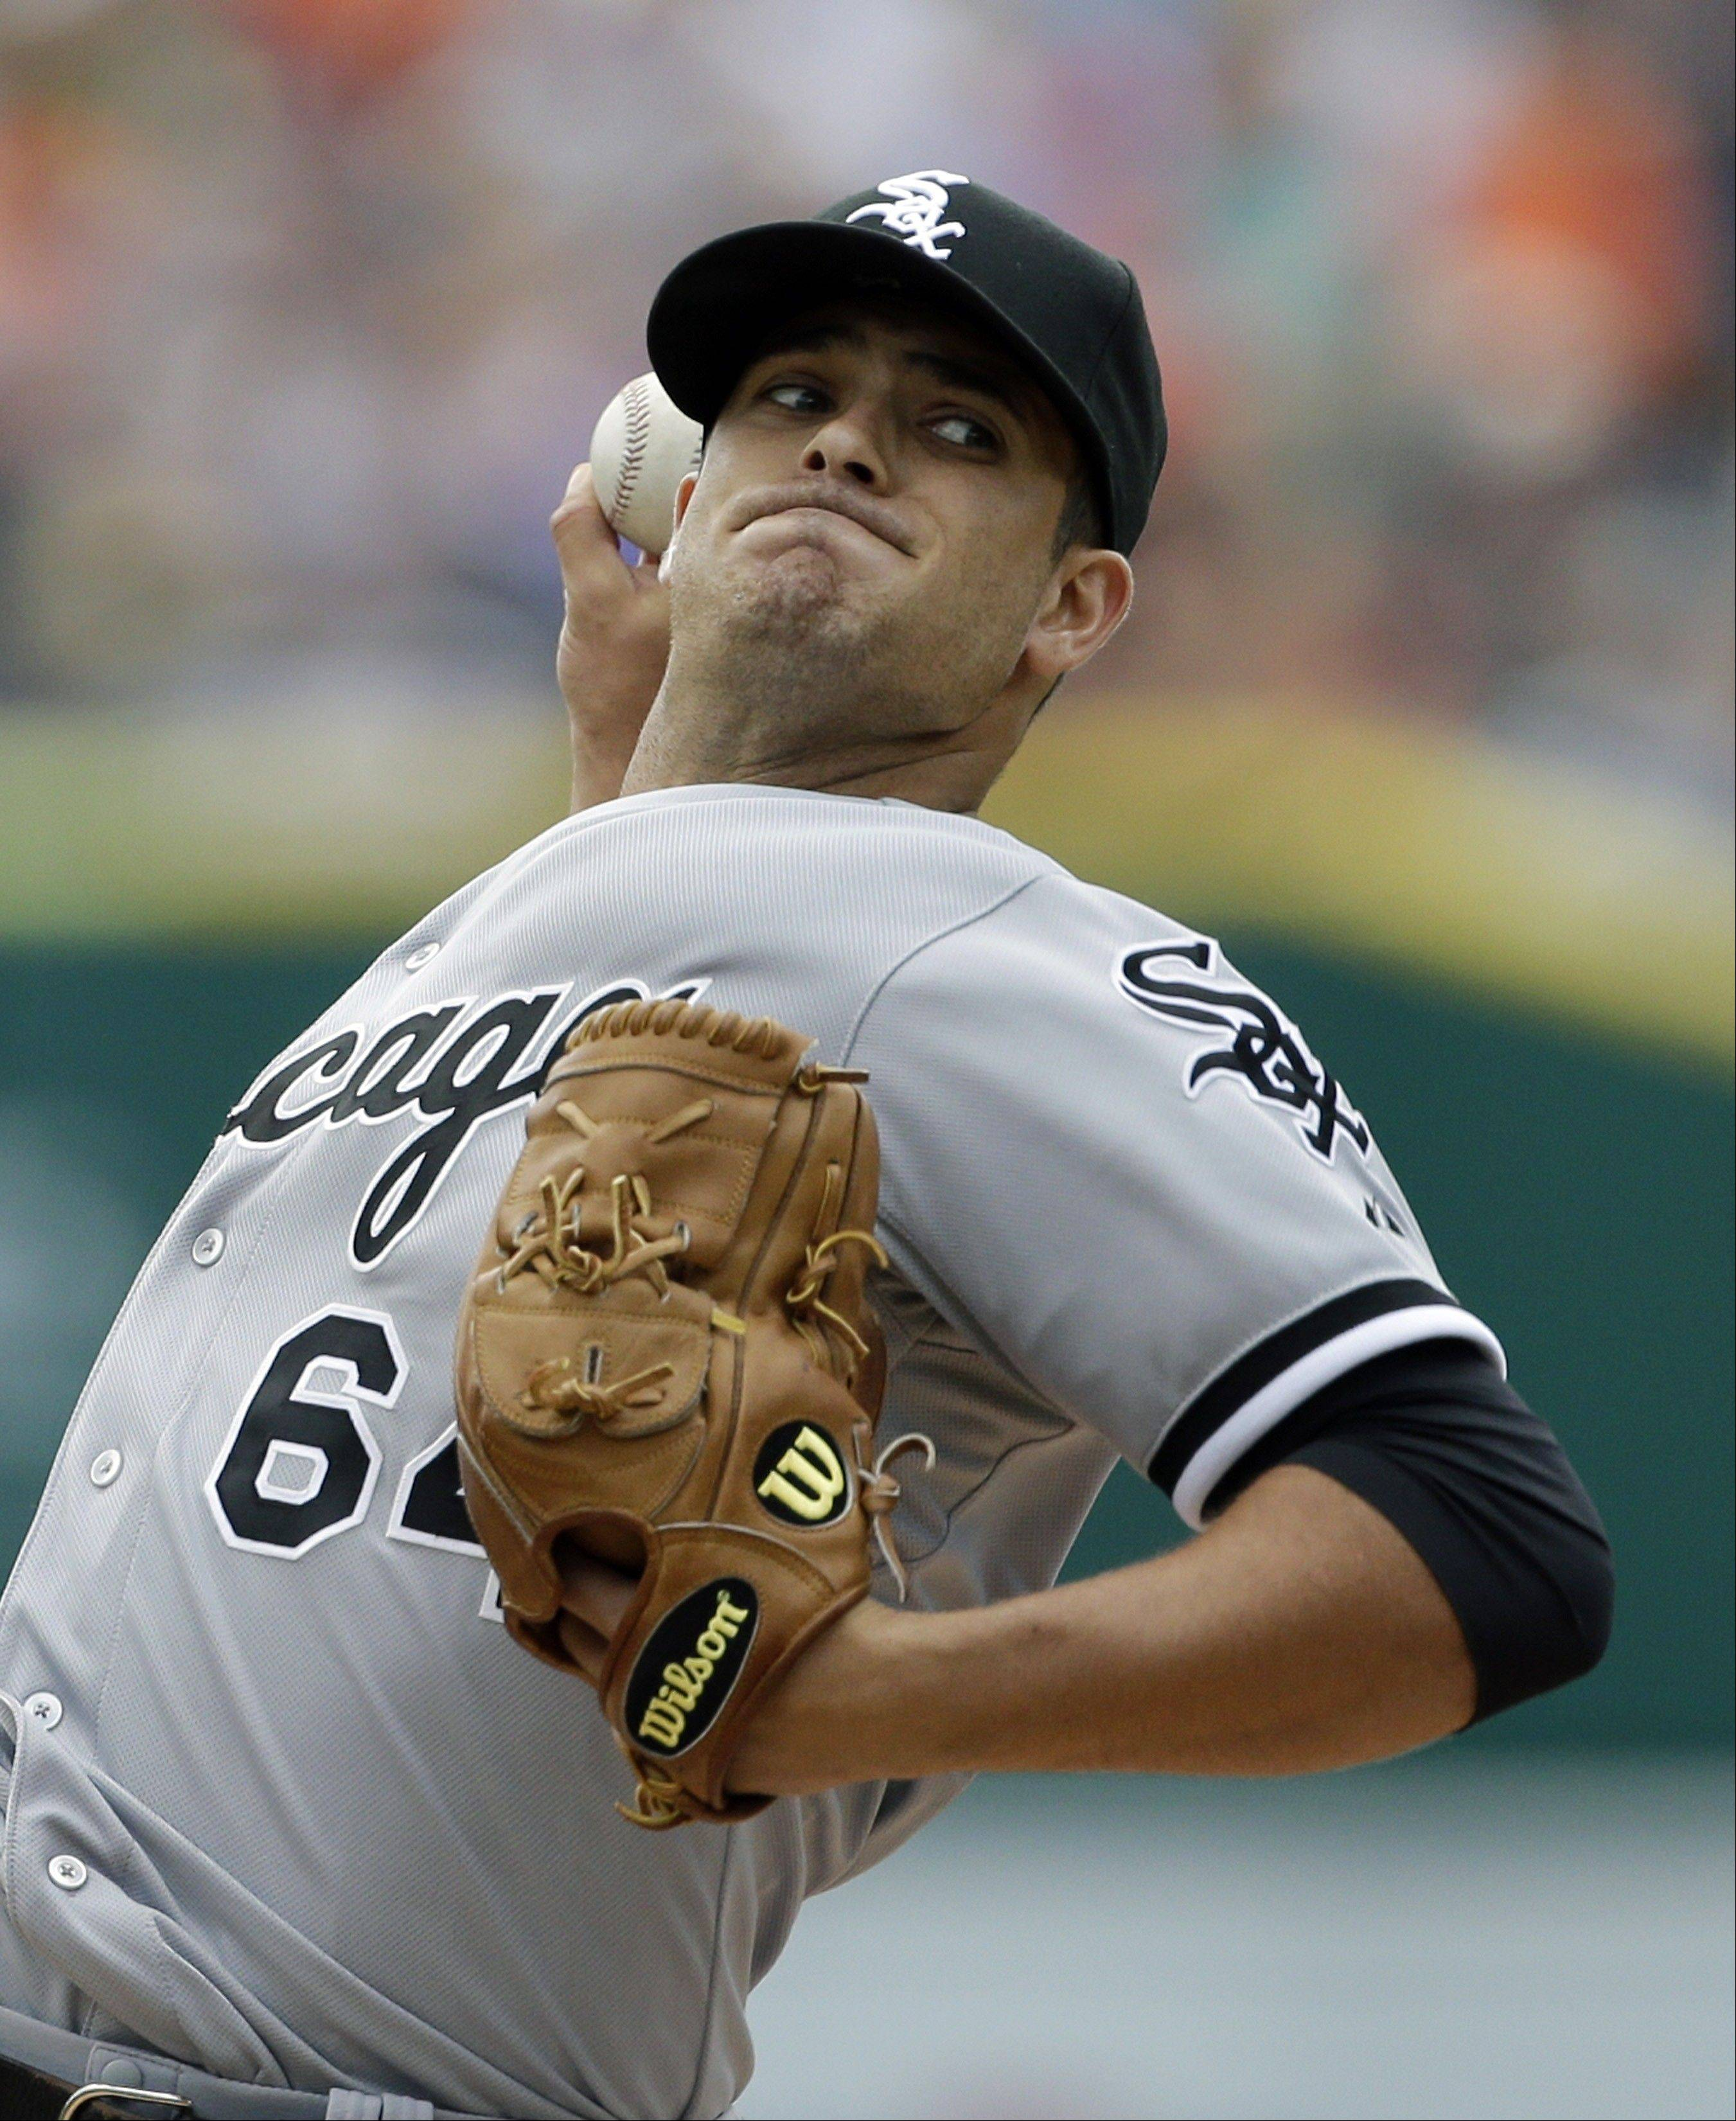 Andre Rienzo, the first Brazilian to pitch in the major leagues, has a 1.38 ERA after 2 road starts for the White Sox.